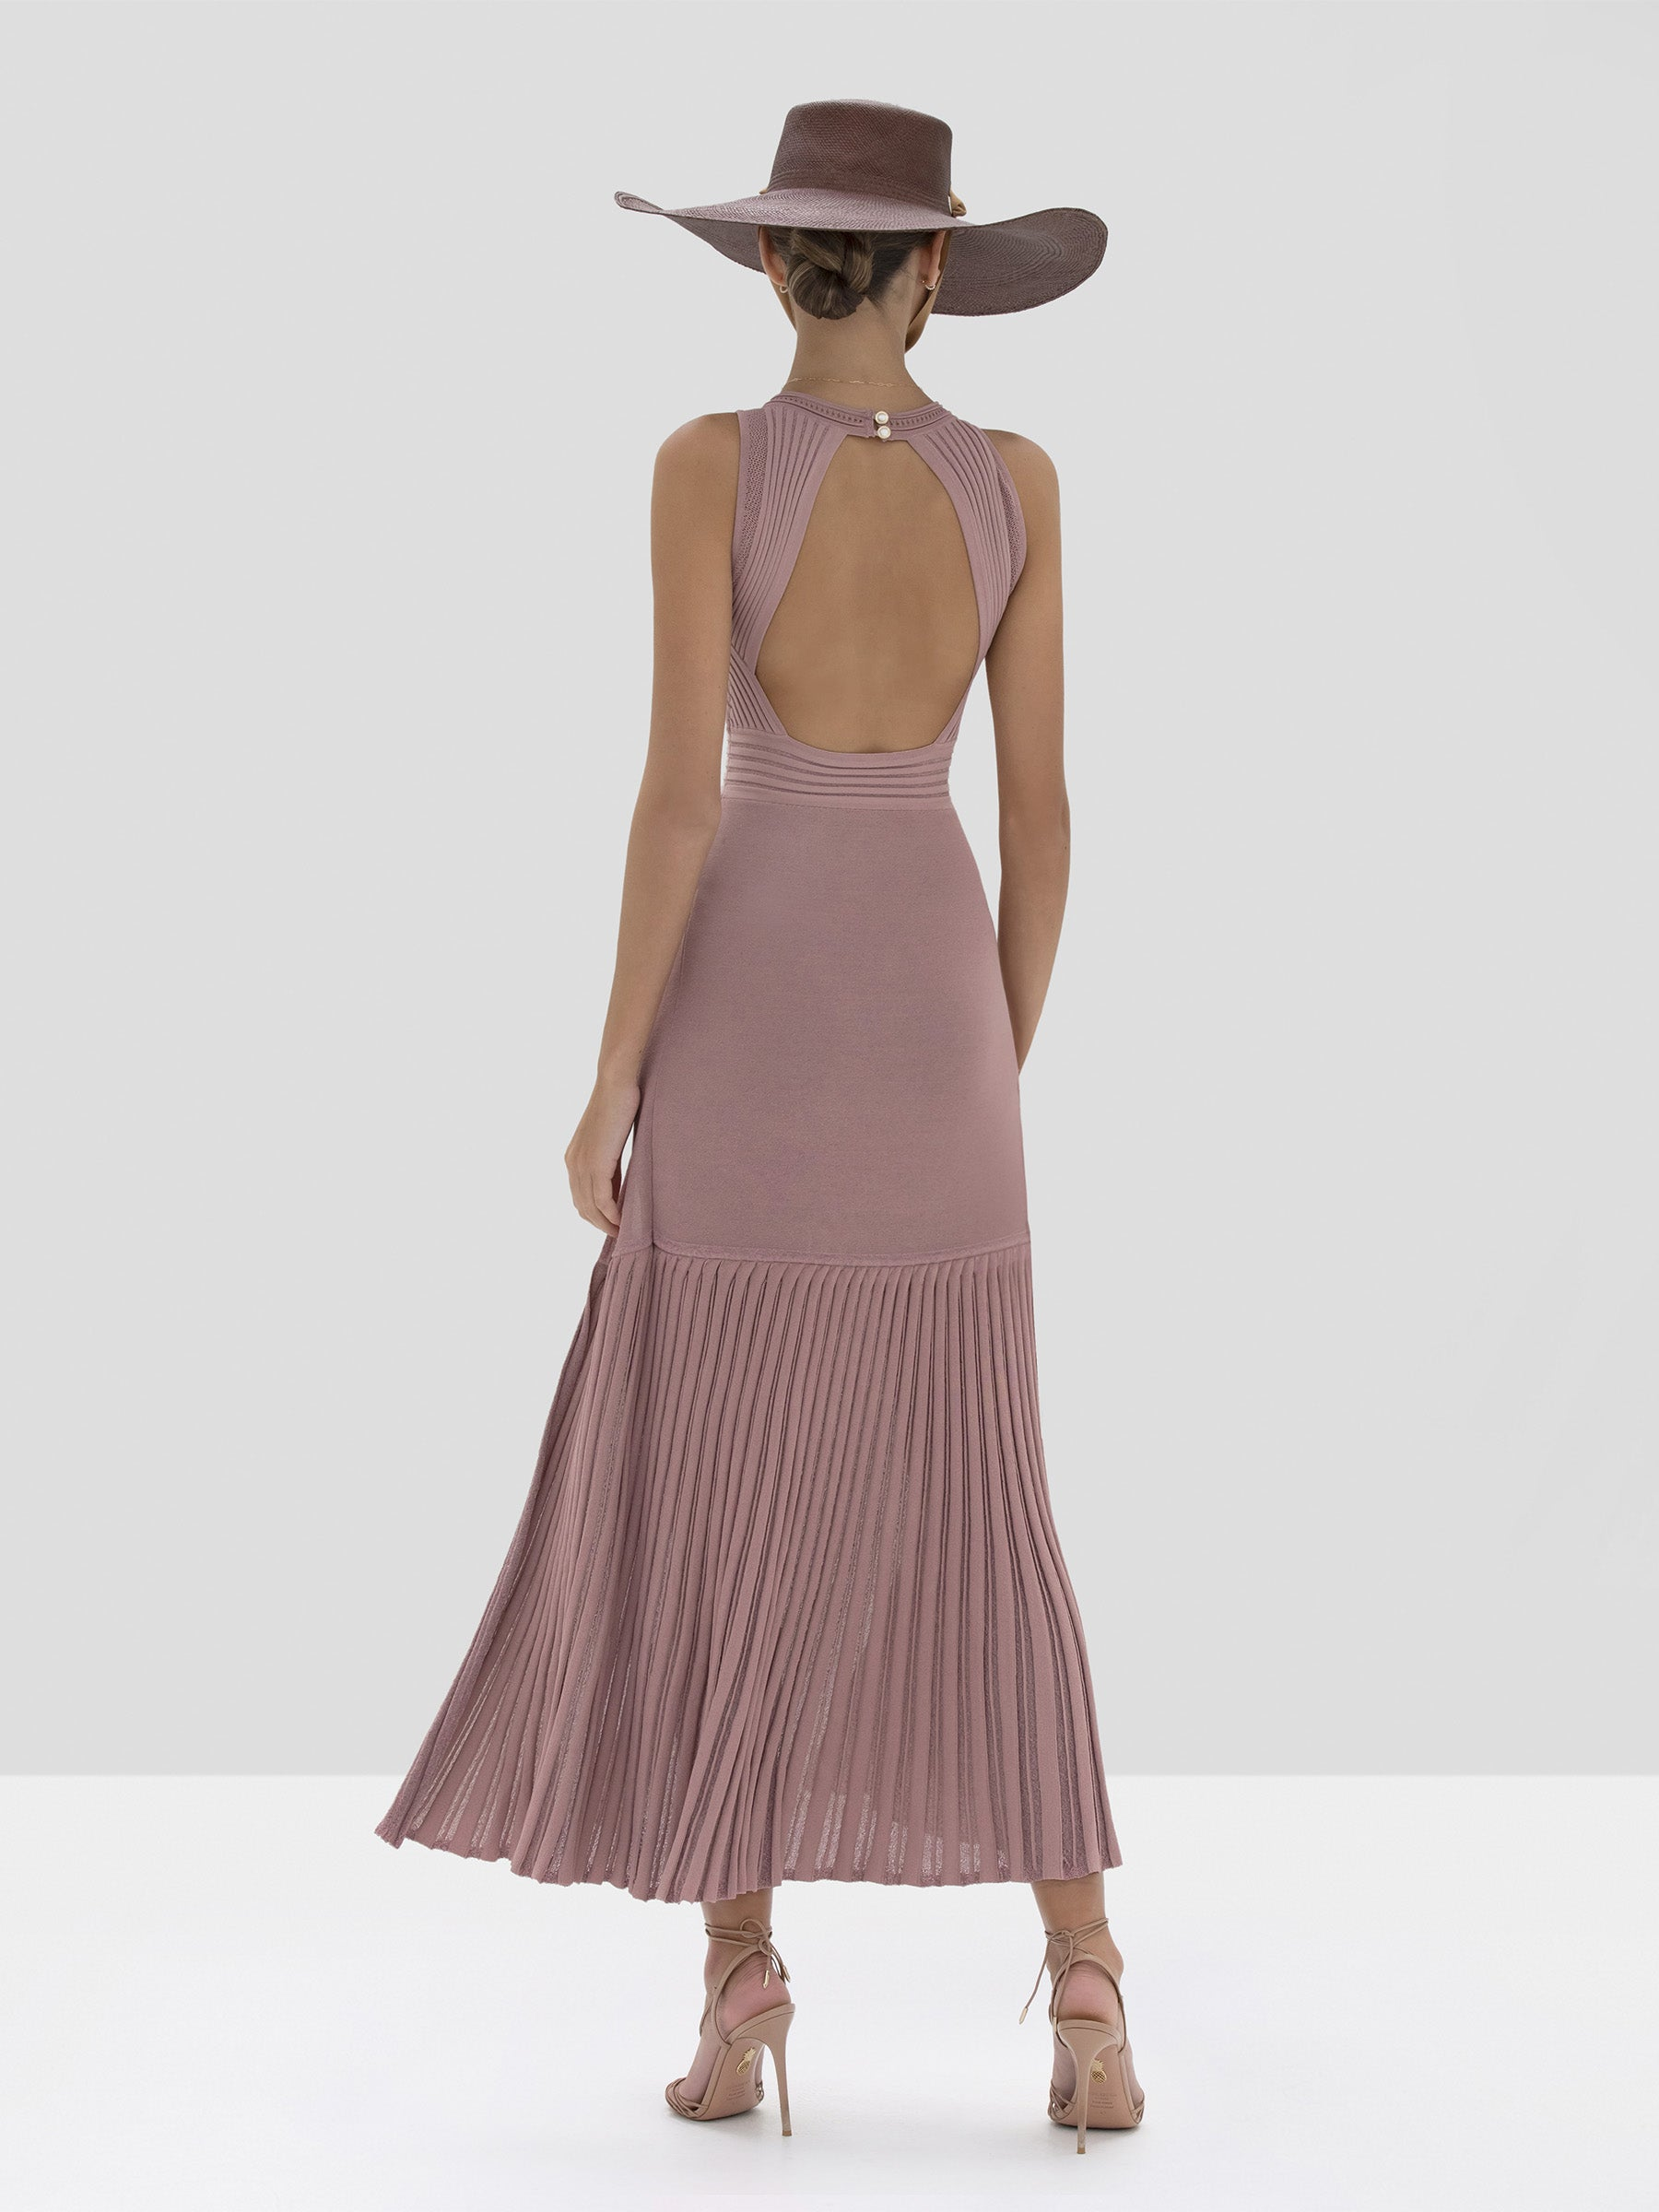 Alexis Gara Dress in Dusty Rose from Spring Summer 2020 - Rear View